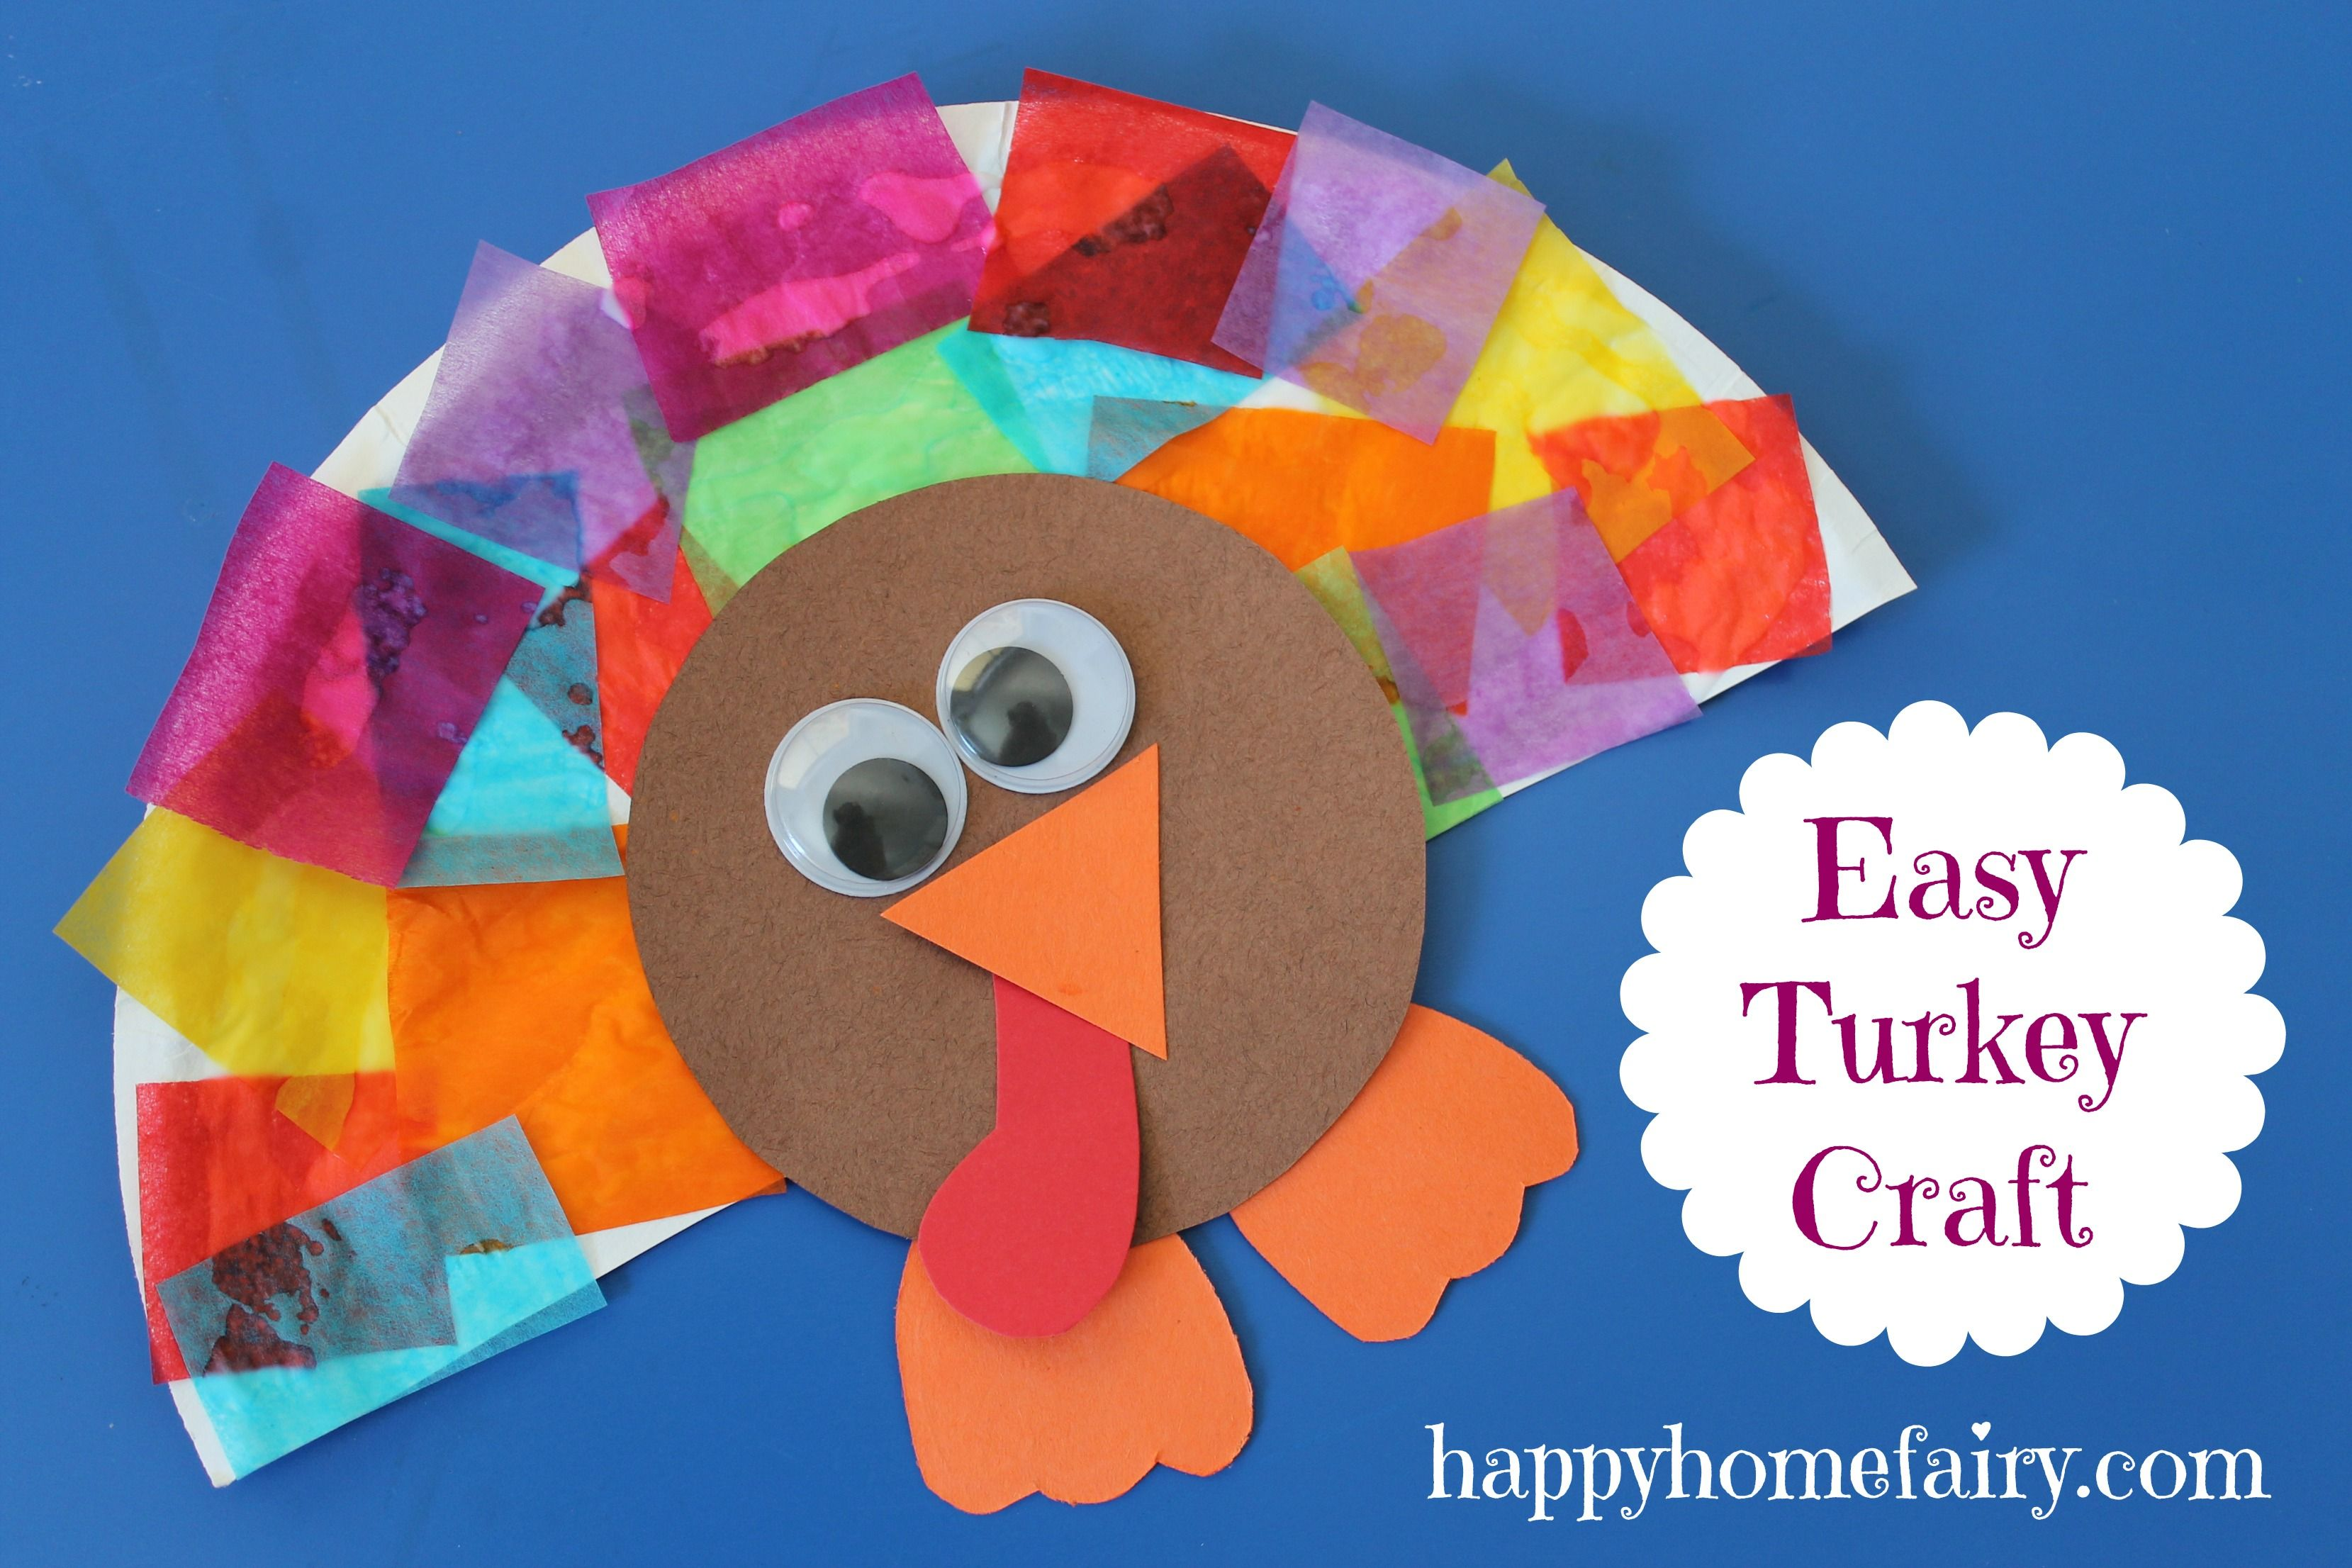 Easy Turkey Craft Things To Do With Pre Toddlers 12 To 20